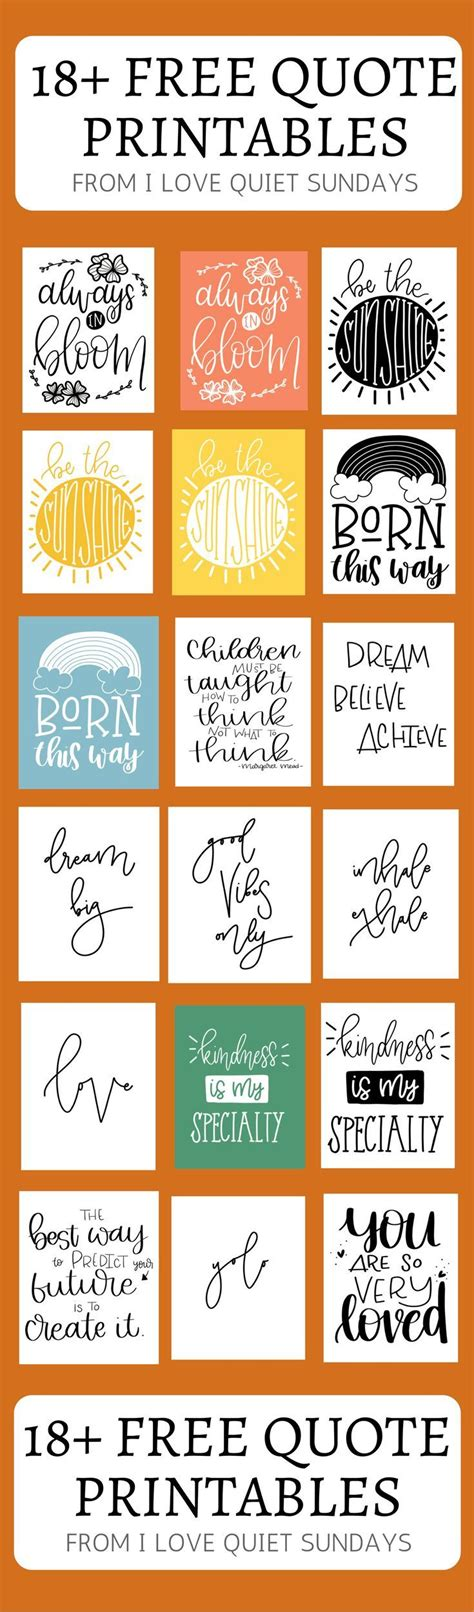 printable work quotes 20 free downloadable quotes motivational quotes work out